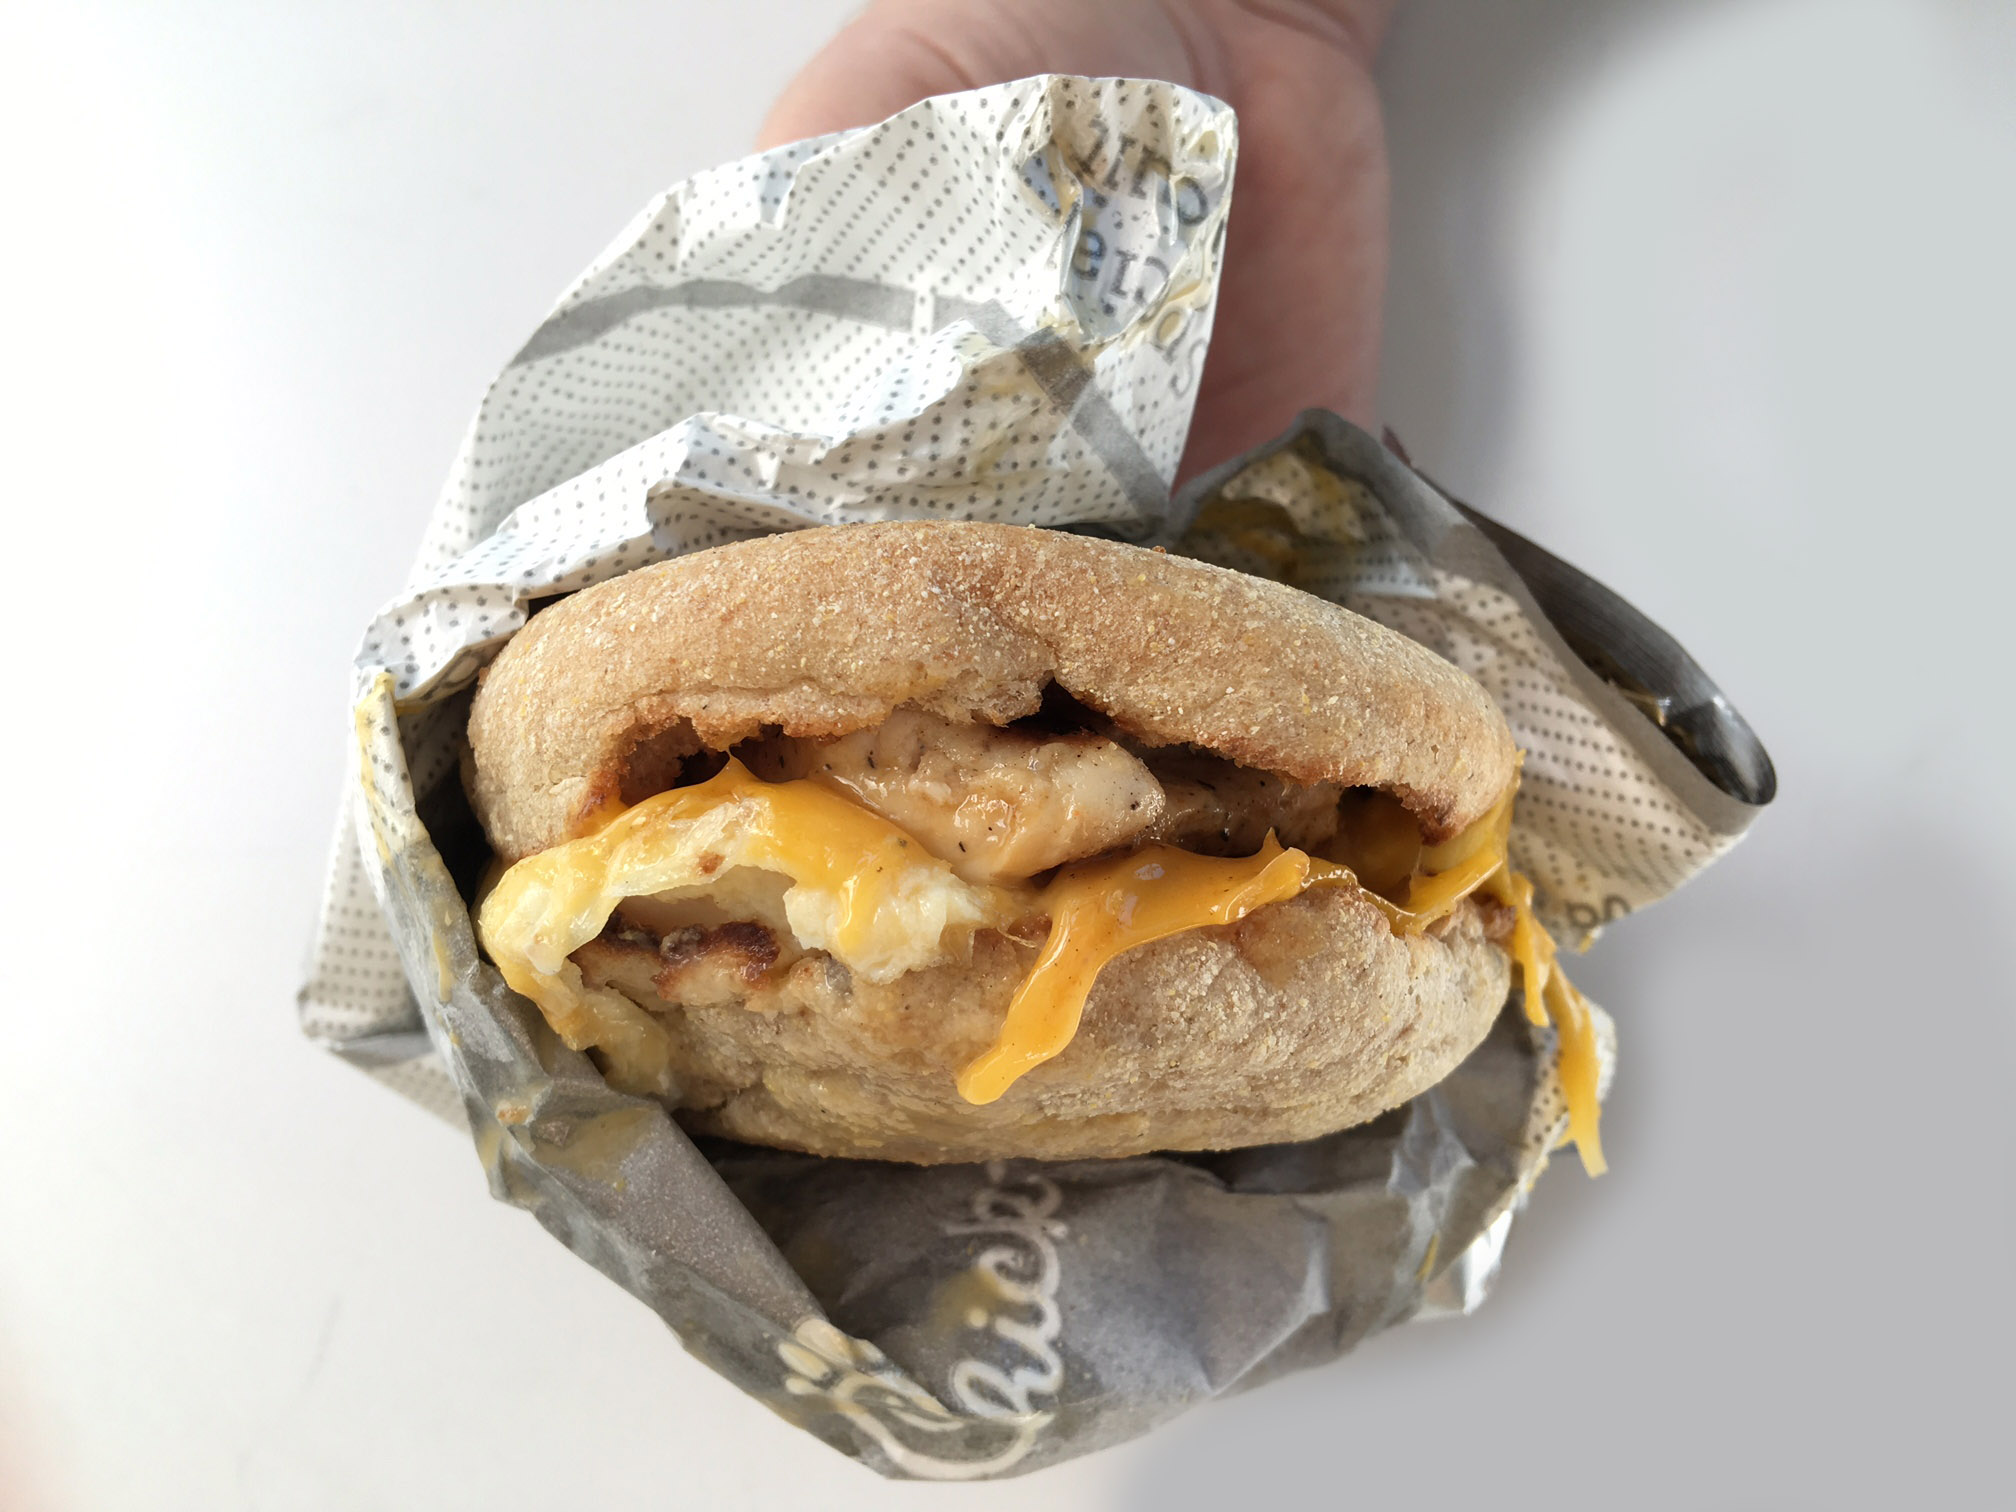 Healthiest Fast Food Breakfast: Chick-fil-A's Egg White Grill ...